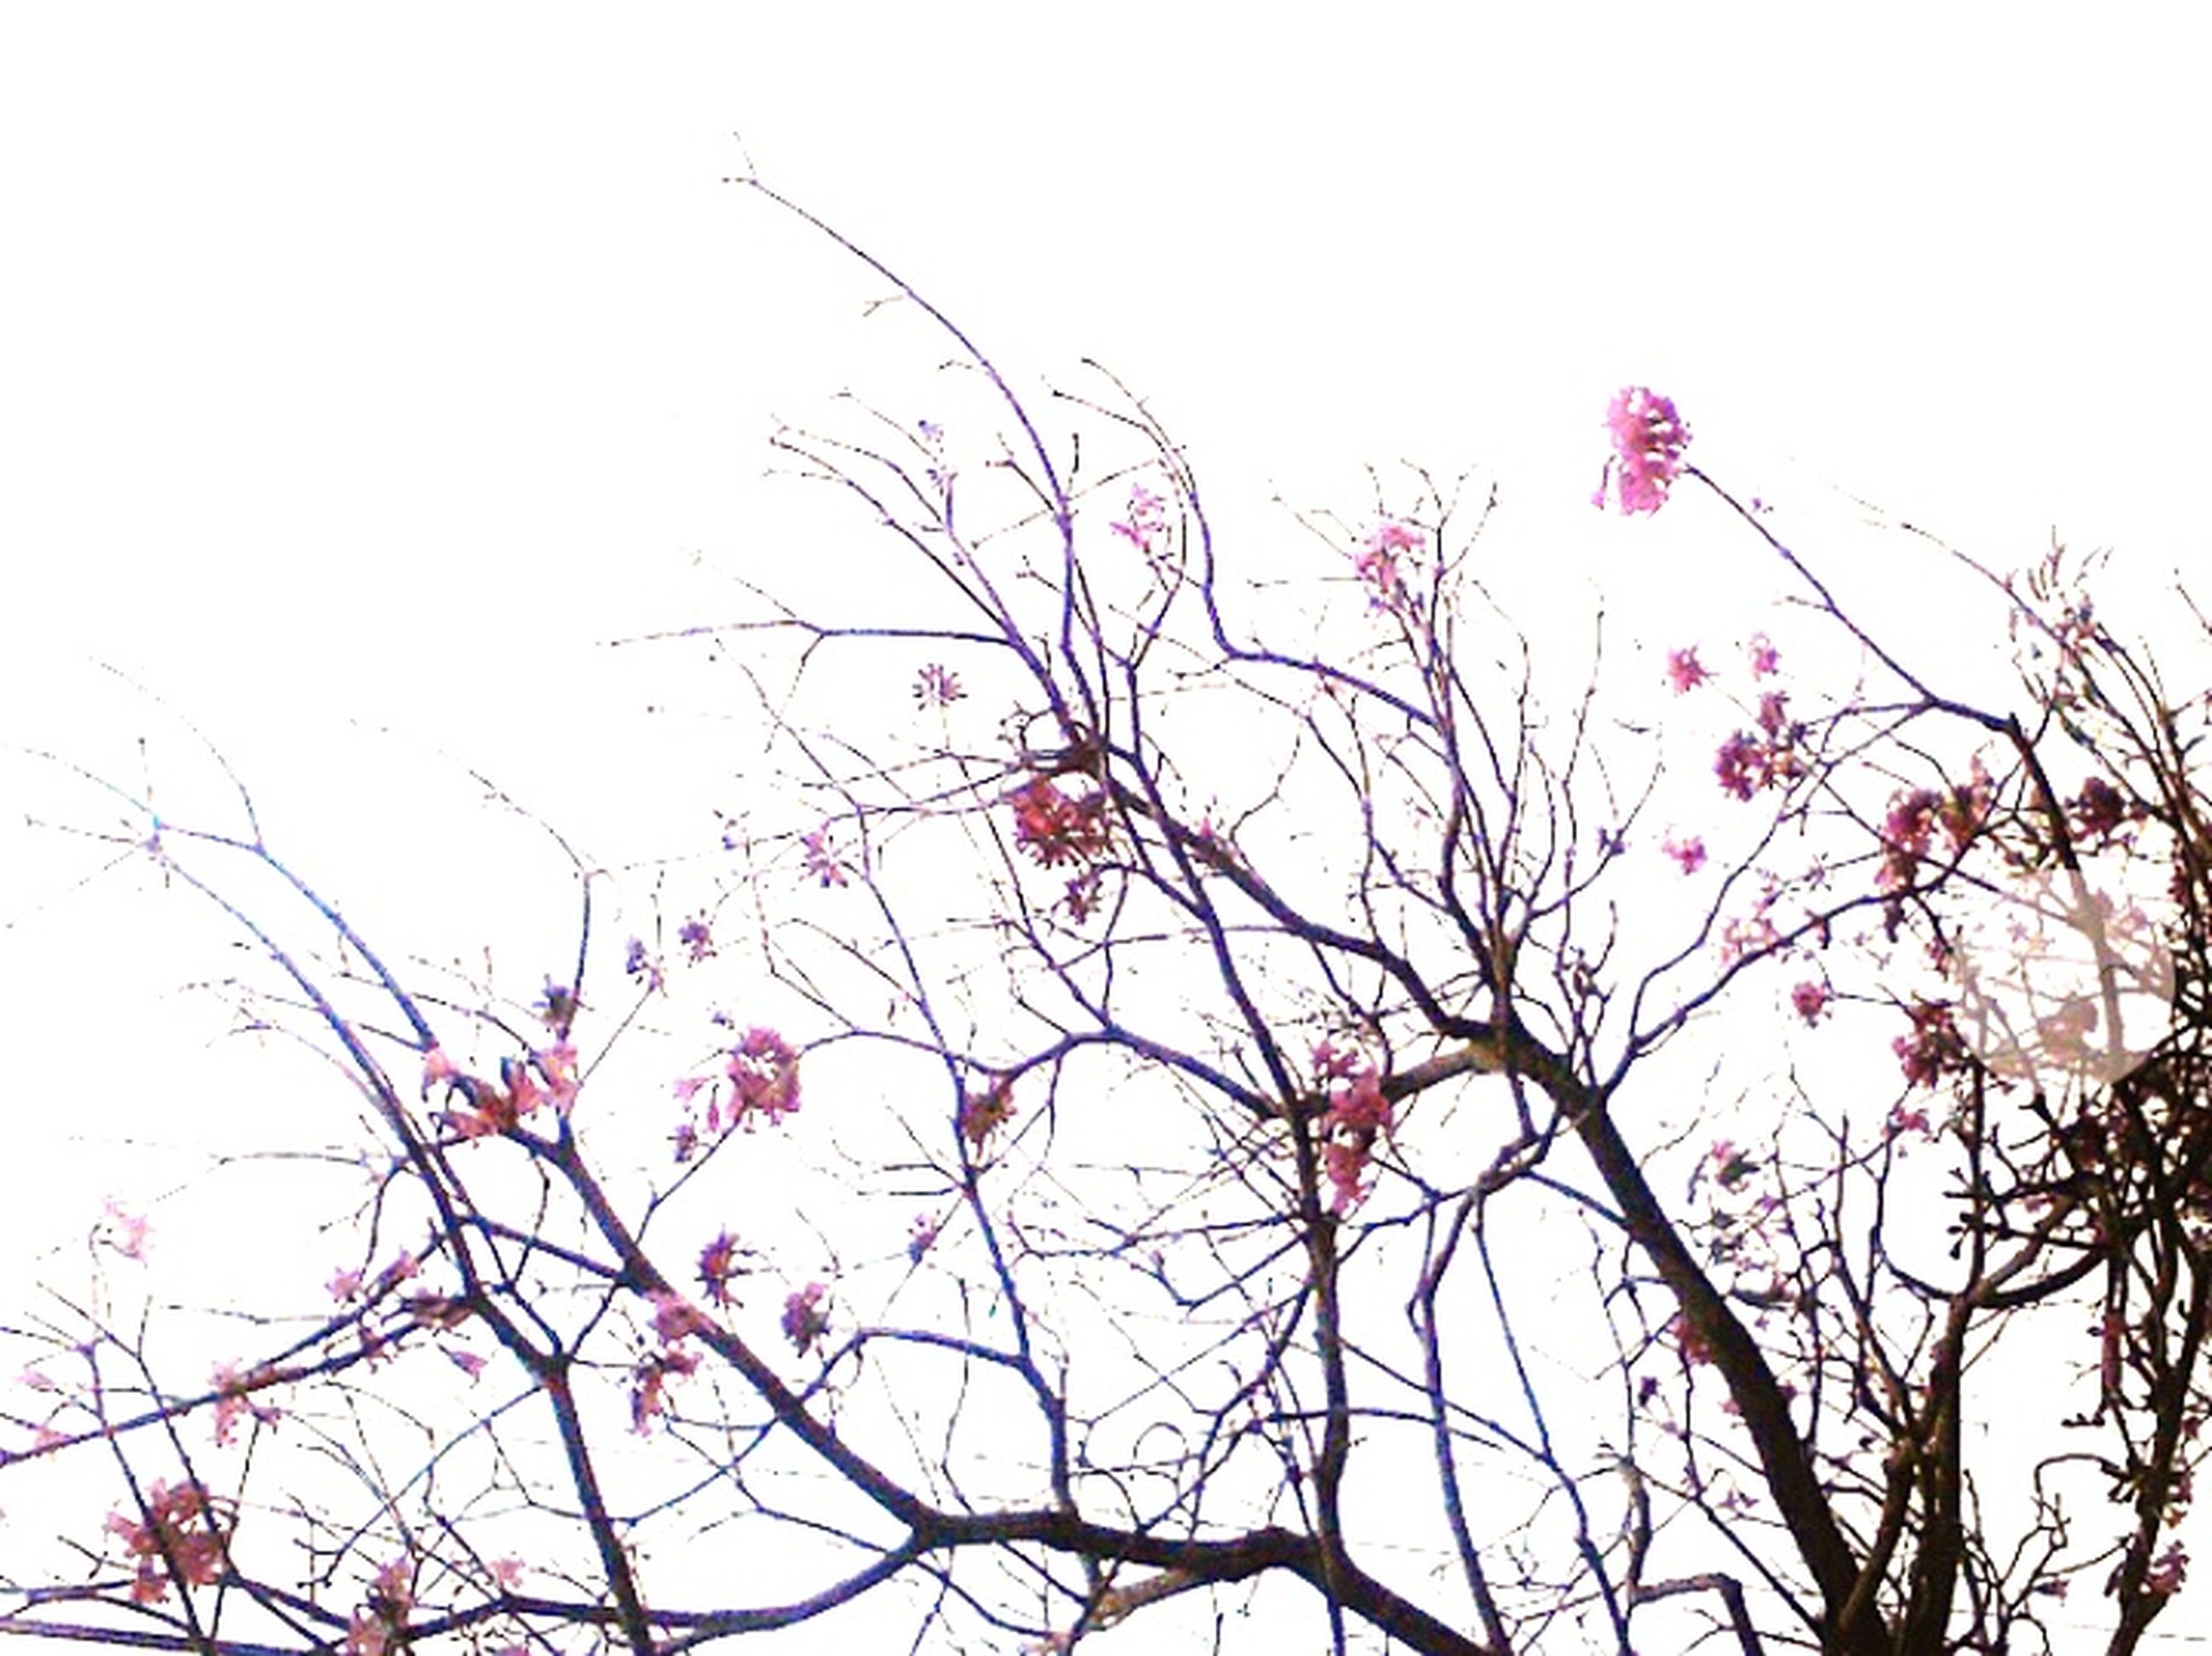 low angle view, flower, clear sky, branch, tree, growth, beauty in nature, pink color, nature, freshness, fragility, sky, high section, day, blossom, outdoors, blooming, no people, copy space, twig